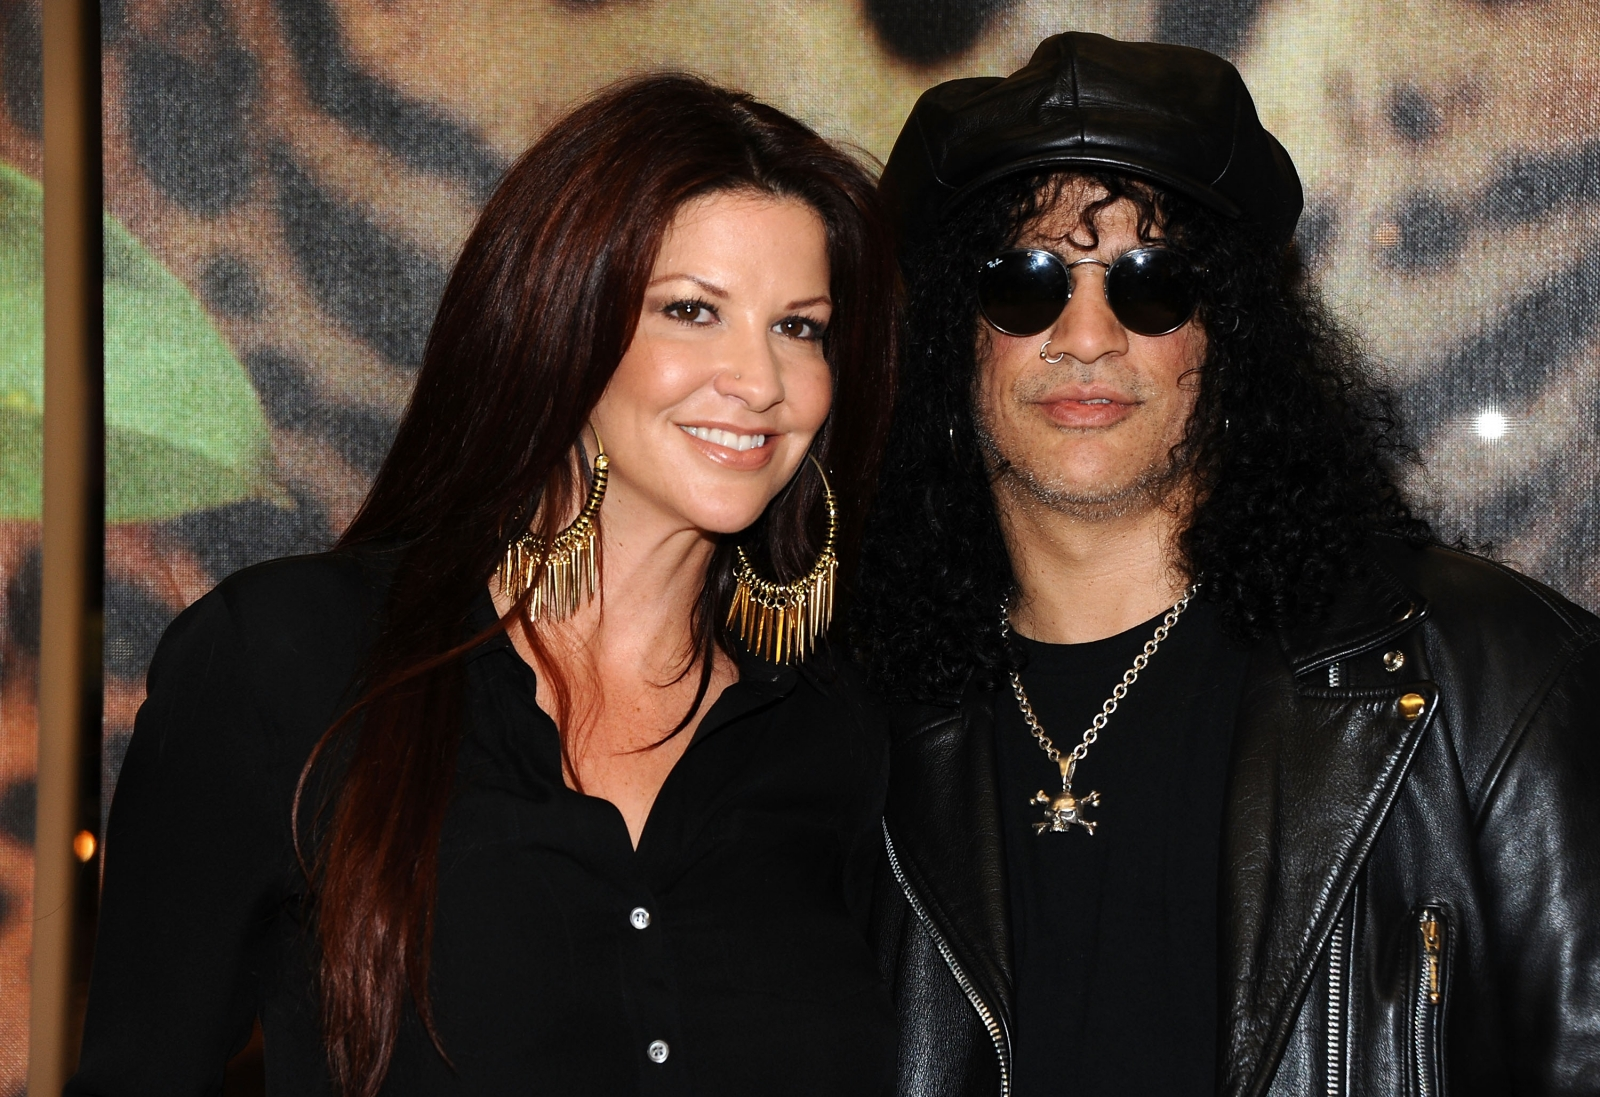 Slash and wife Perla Ferrar